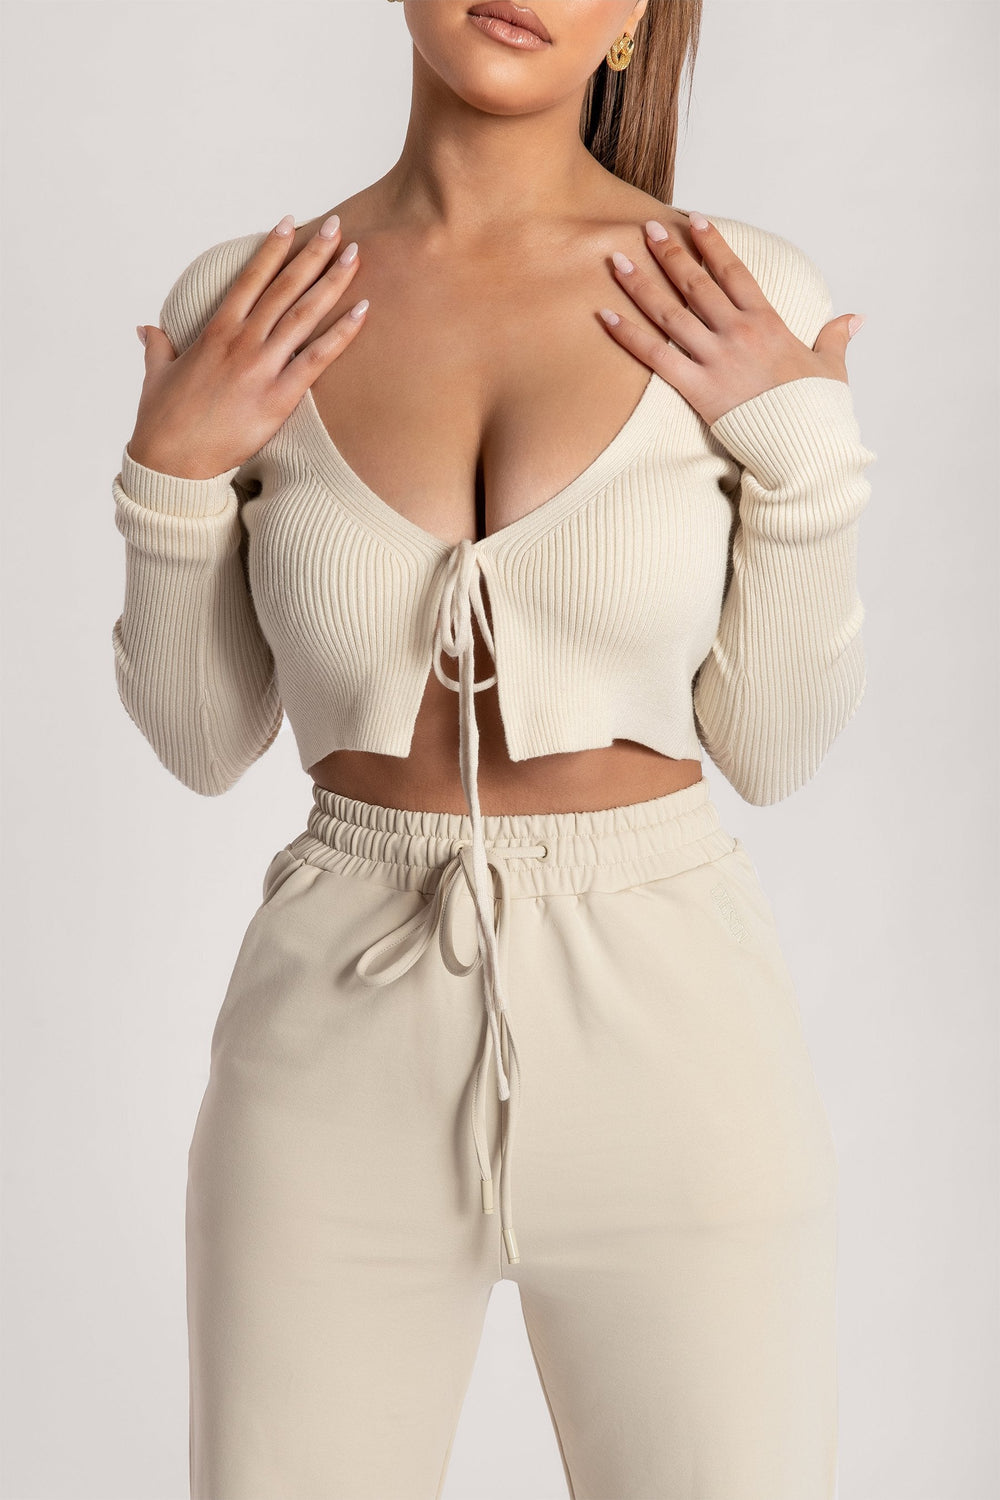 Bobbie Ribbed Tie Front Crop Top - Cream - MESHKI ?id=15900356116555